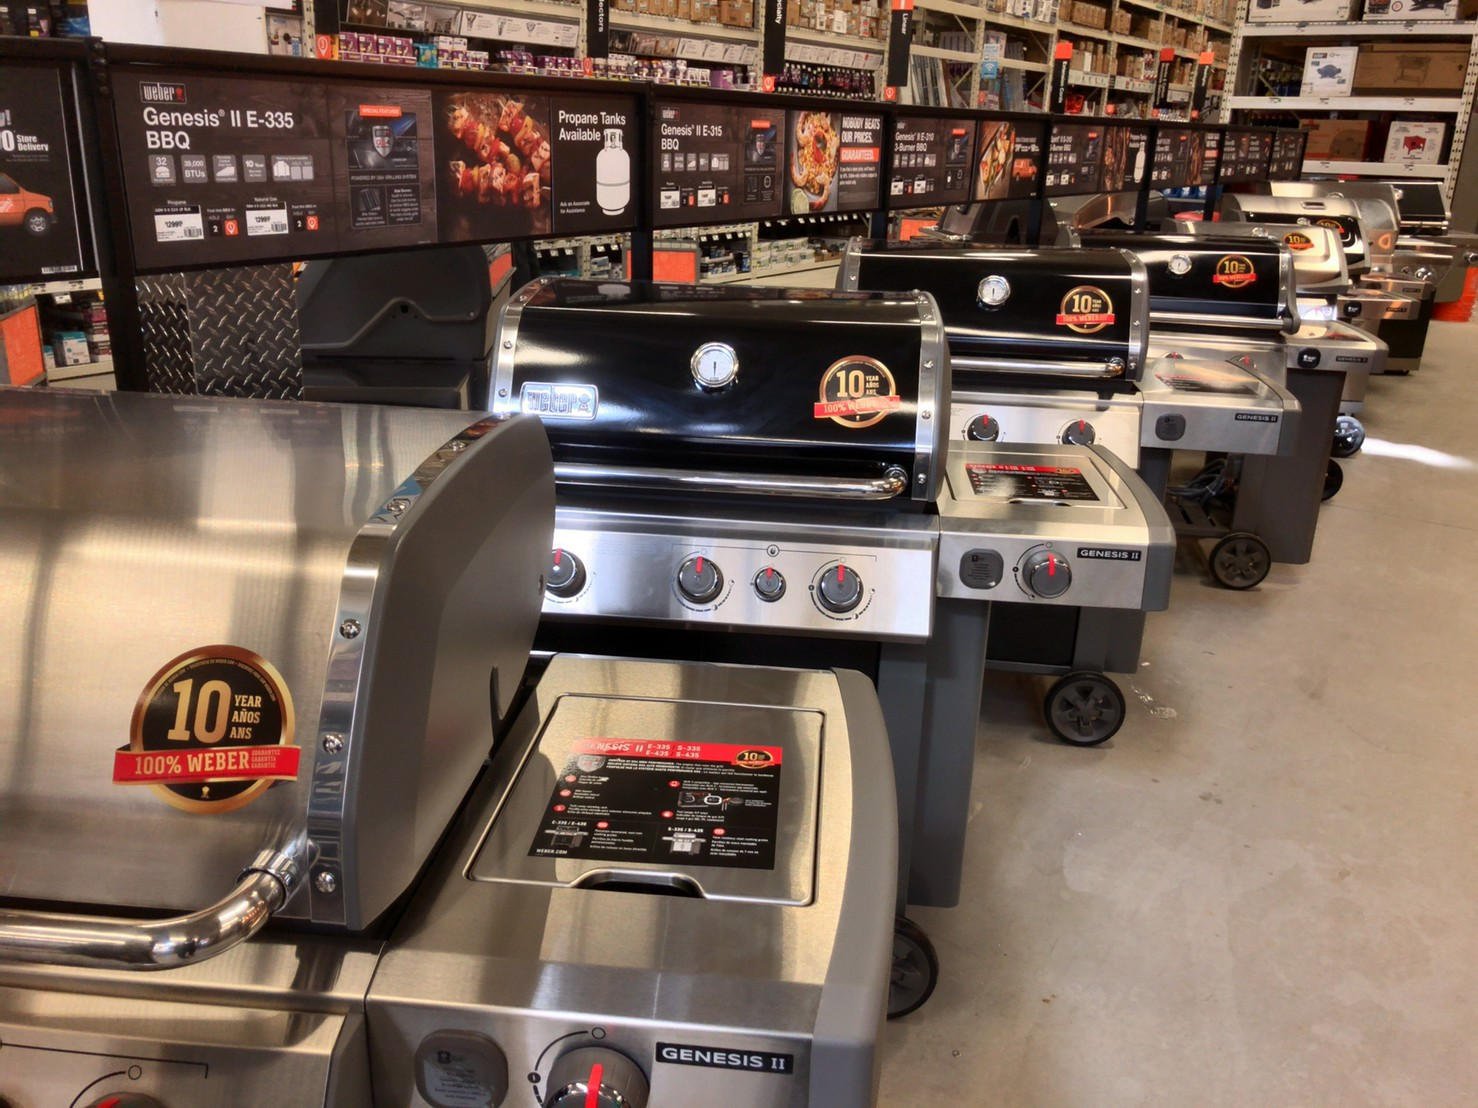 The home depot Barbecue stove